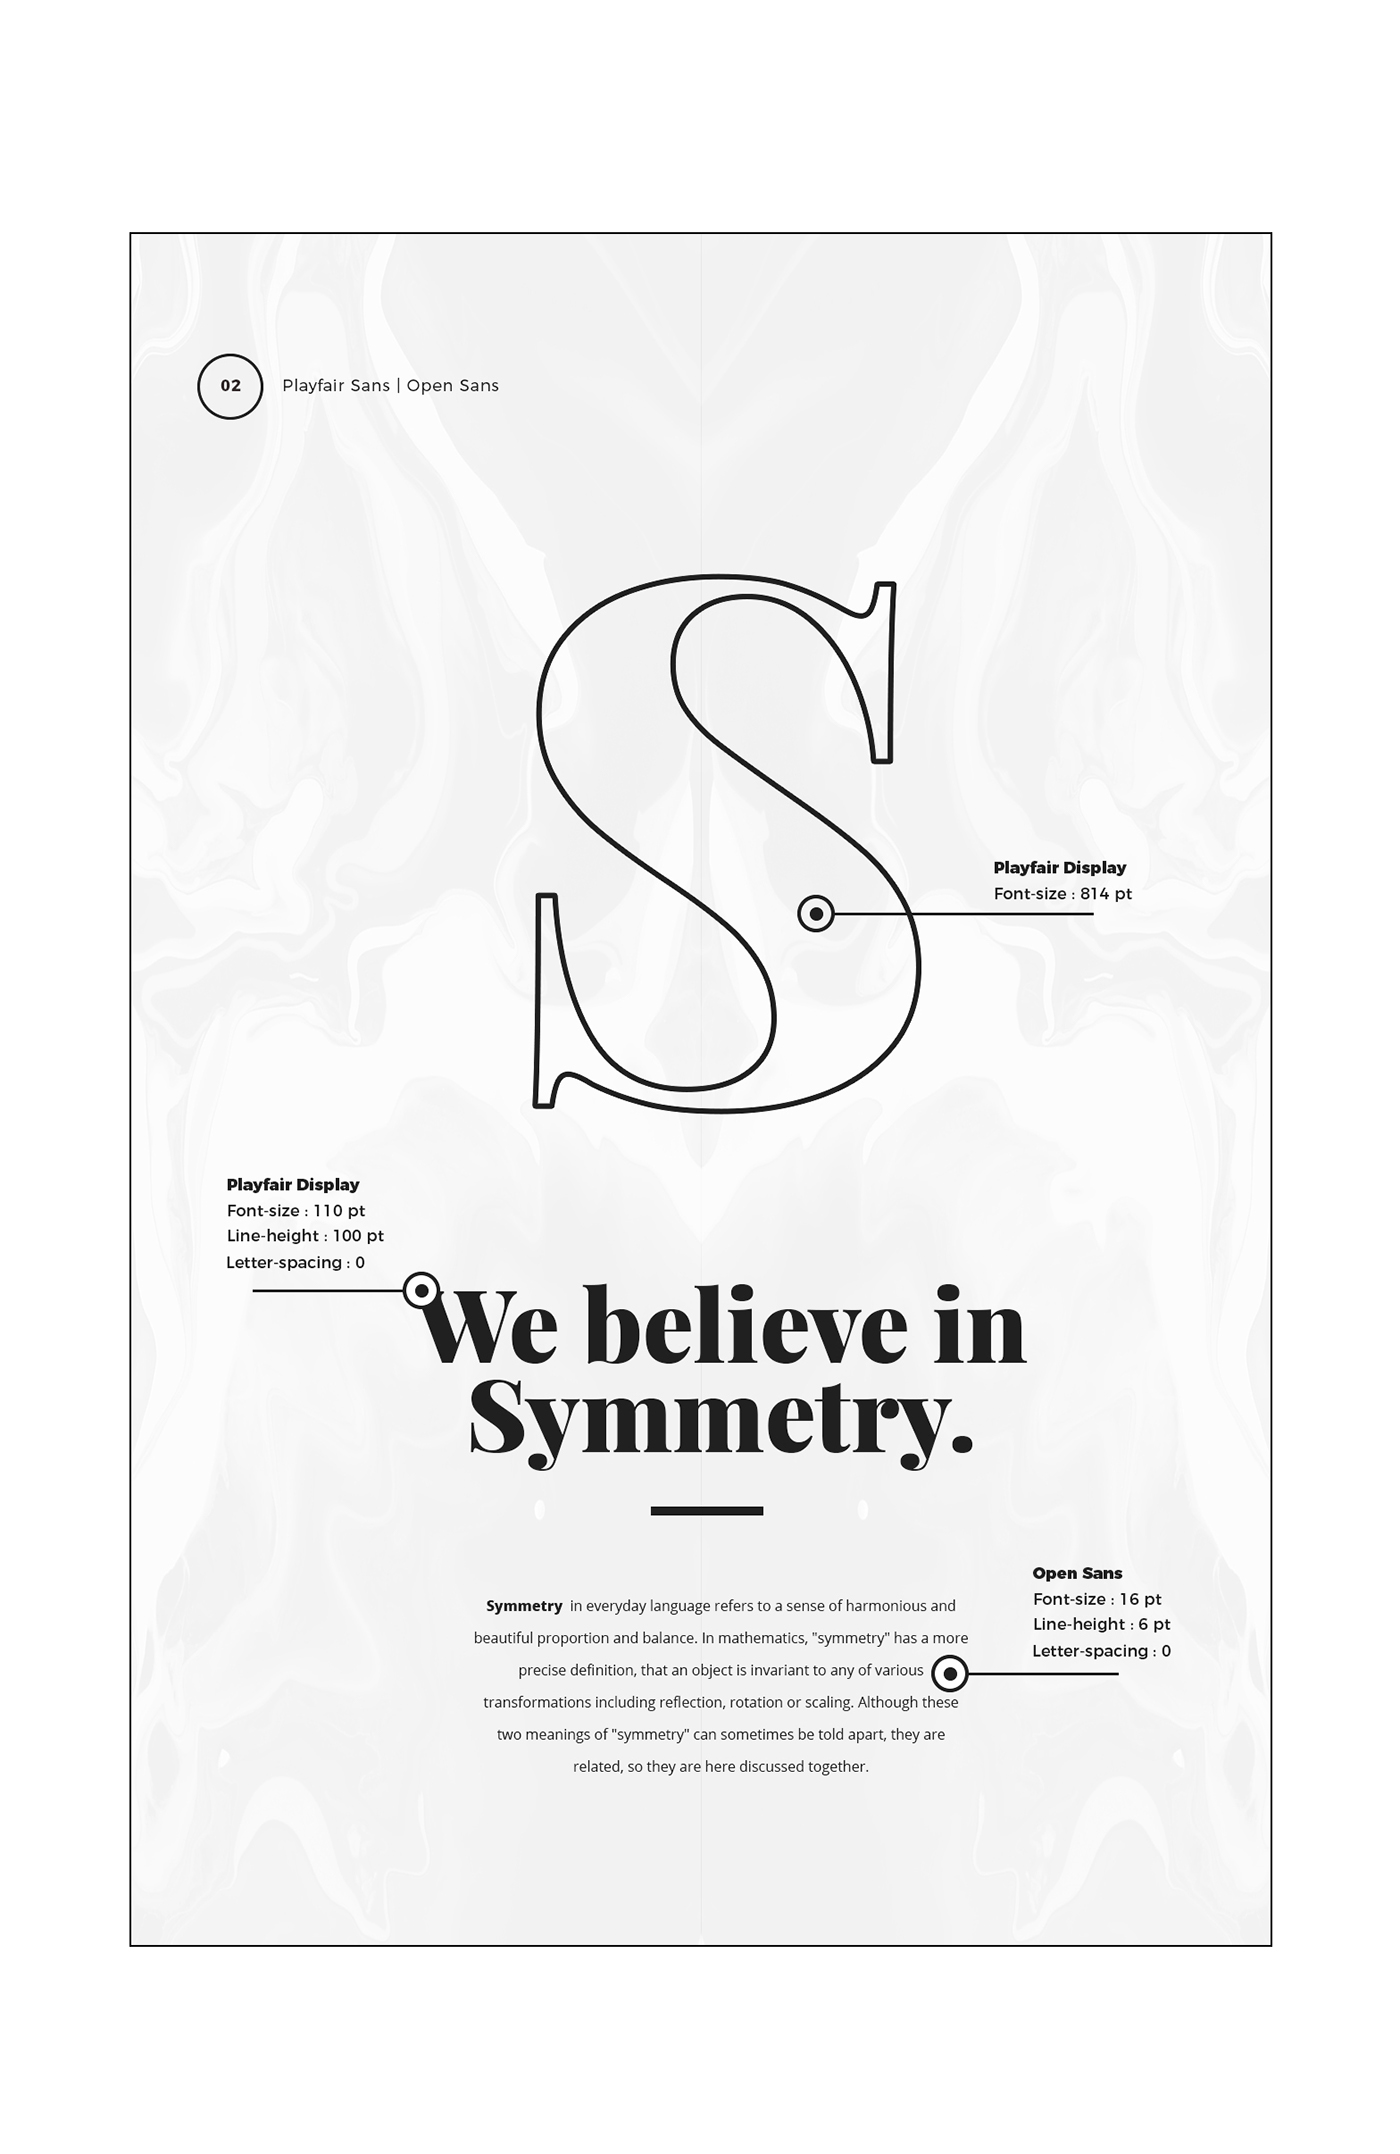 5 Google Fonts Trends and Combinations 2017 on Behance